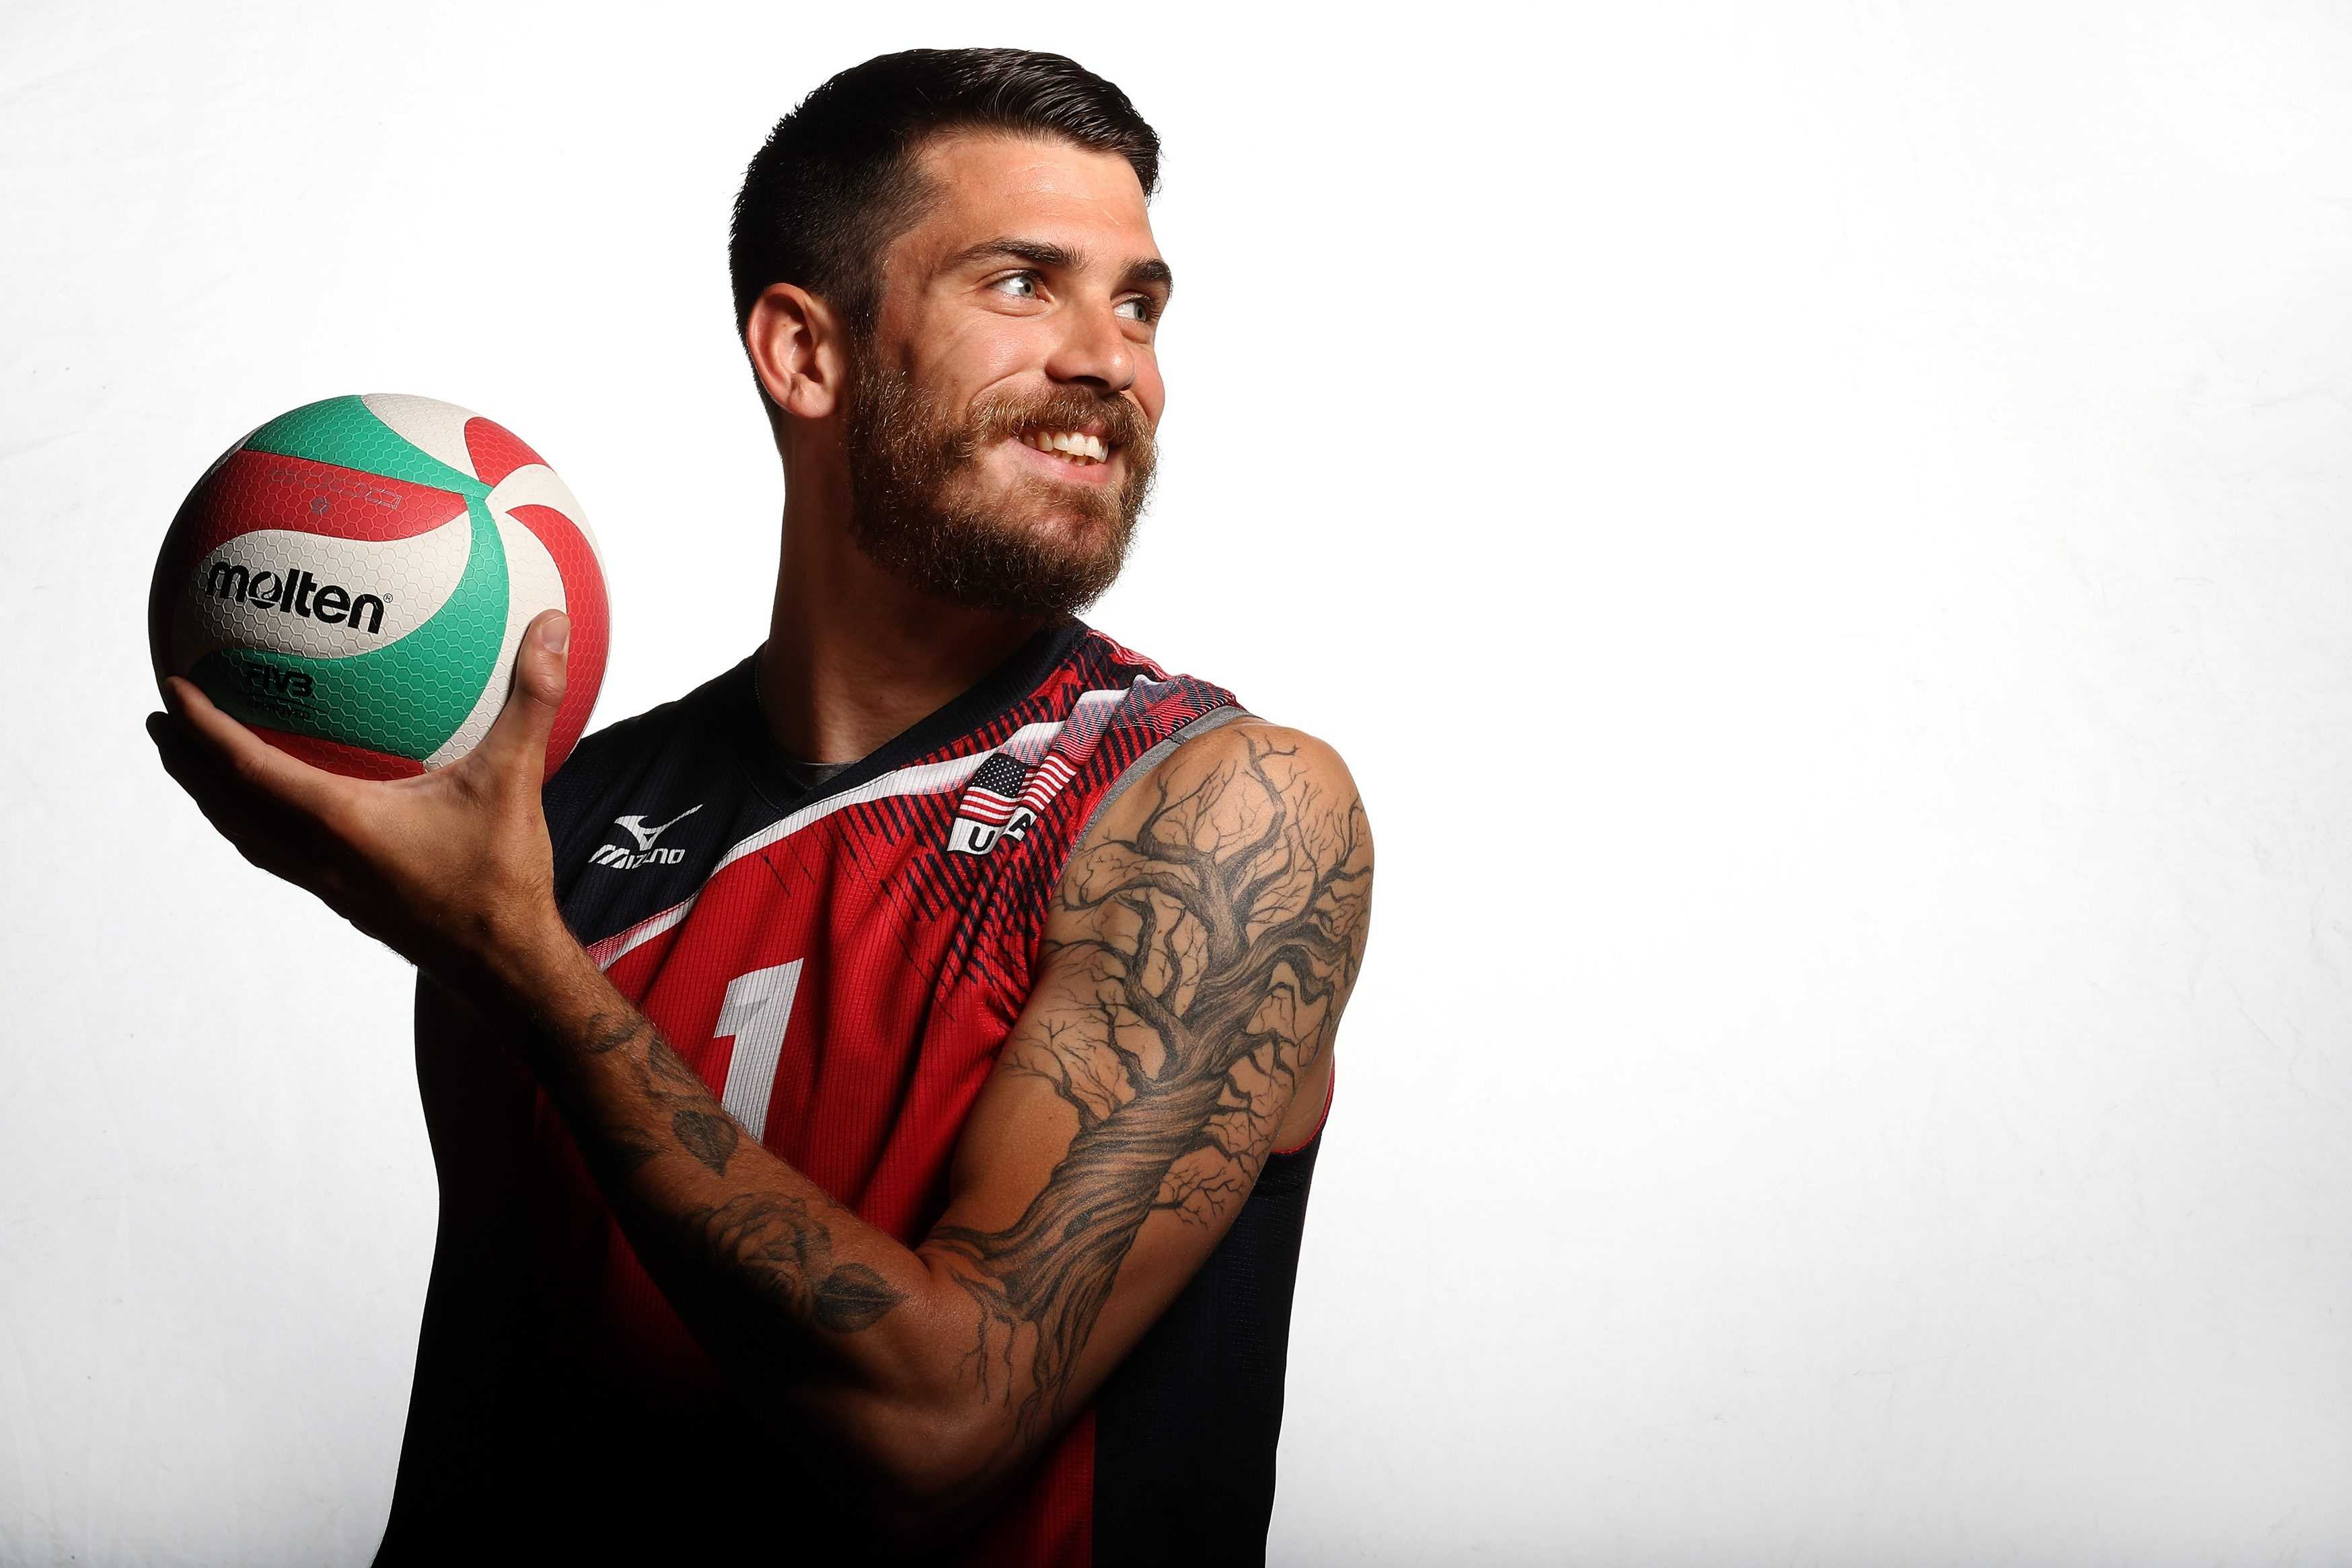 Matt Anderson's tattoo of a tree symbolizes his family roots and Buffalo background. He took a break from volleyball, then came back to take MVP honors in leading the U.S. to the 2015 World Cup title.